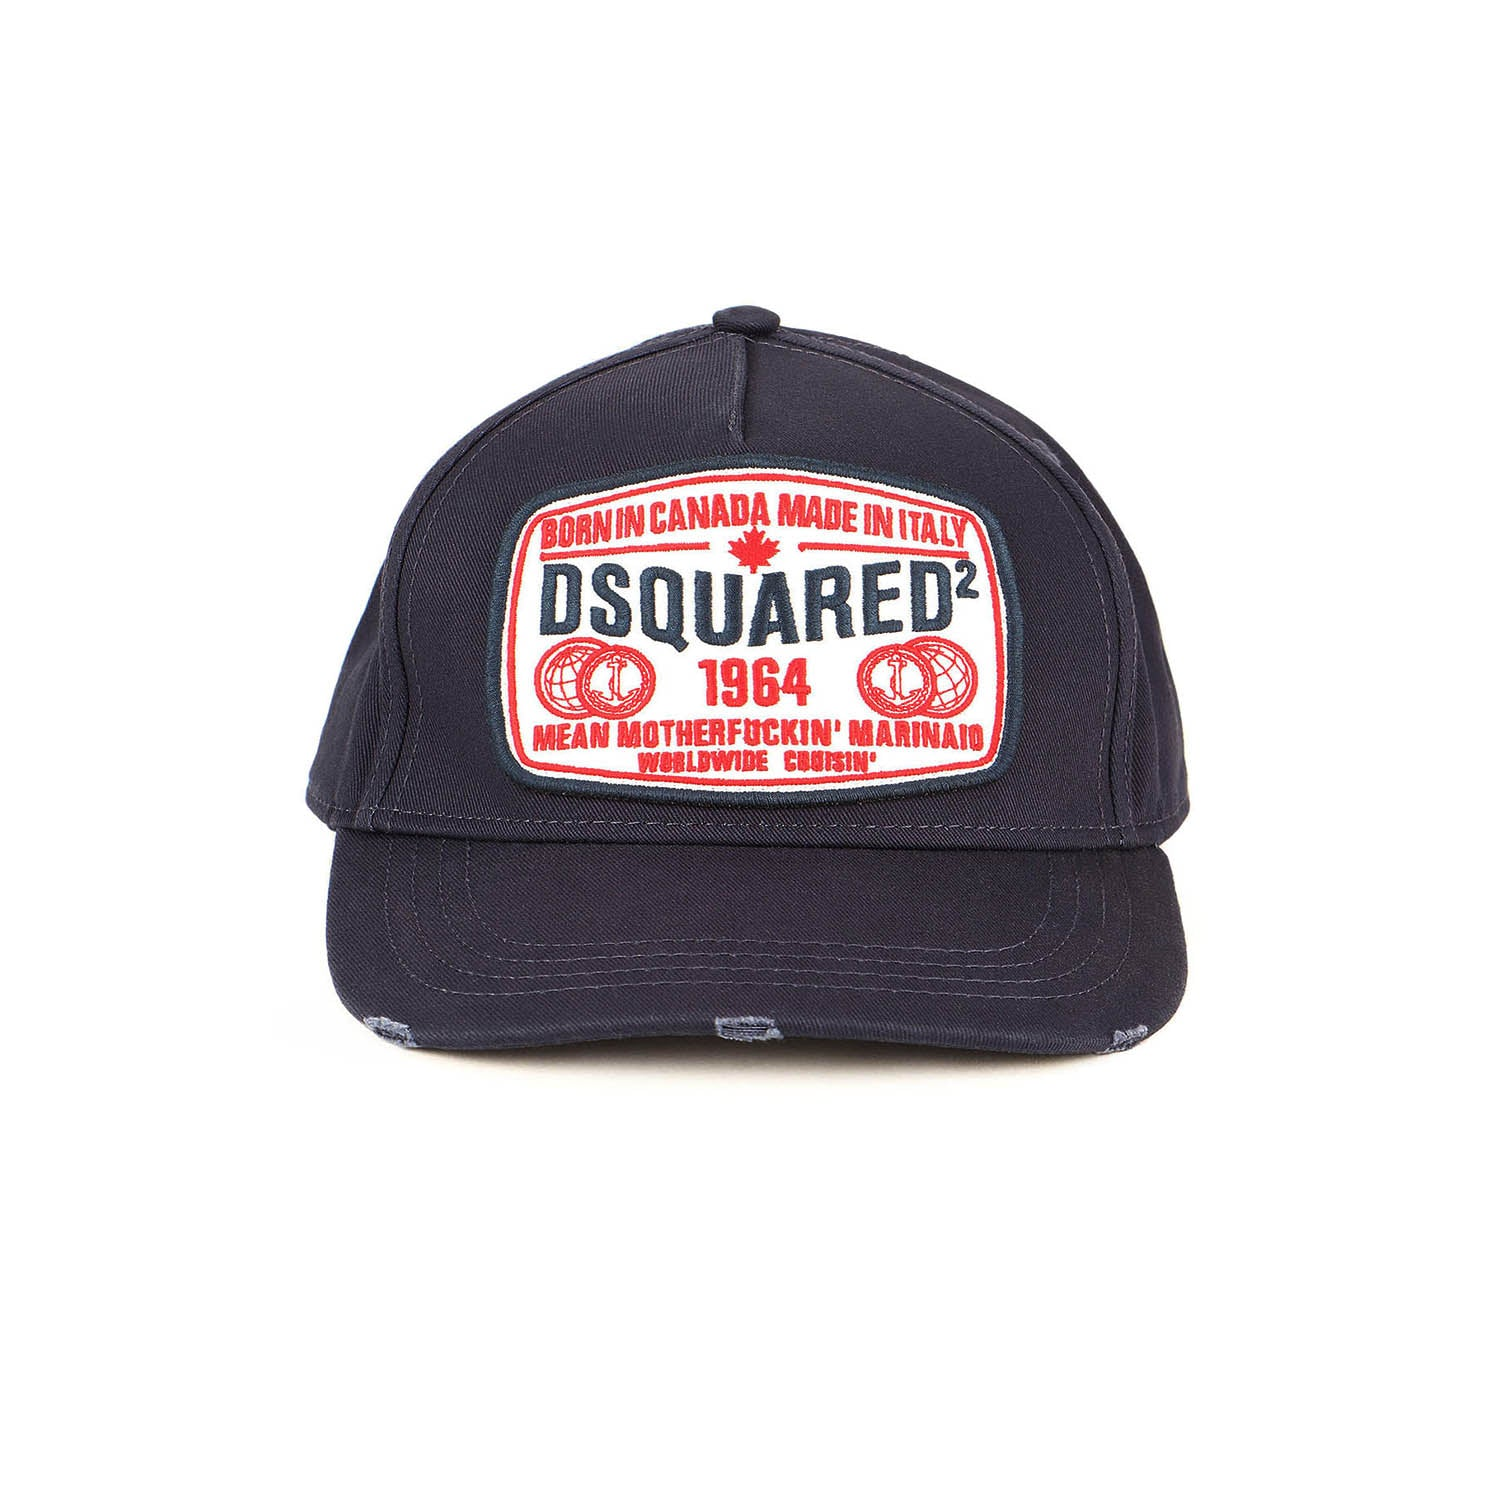 DSquared2 Embroidered Patch Cargo Baseball Cap